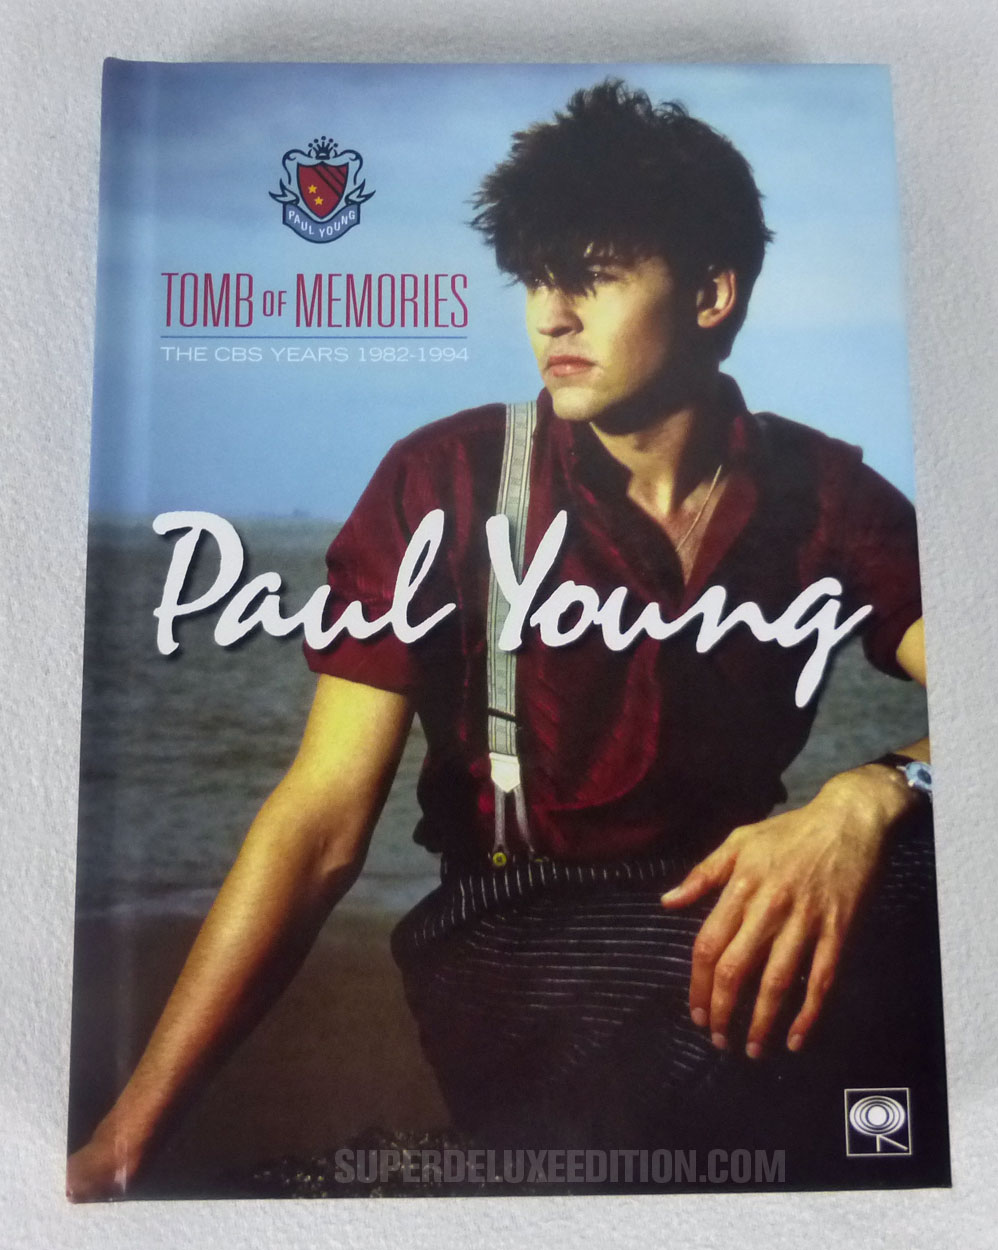 FIRST PICTURES: Paul Young / Tomb of Memories: The CBS Years 1982-1994